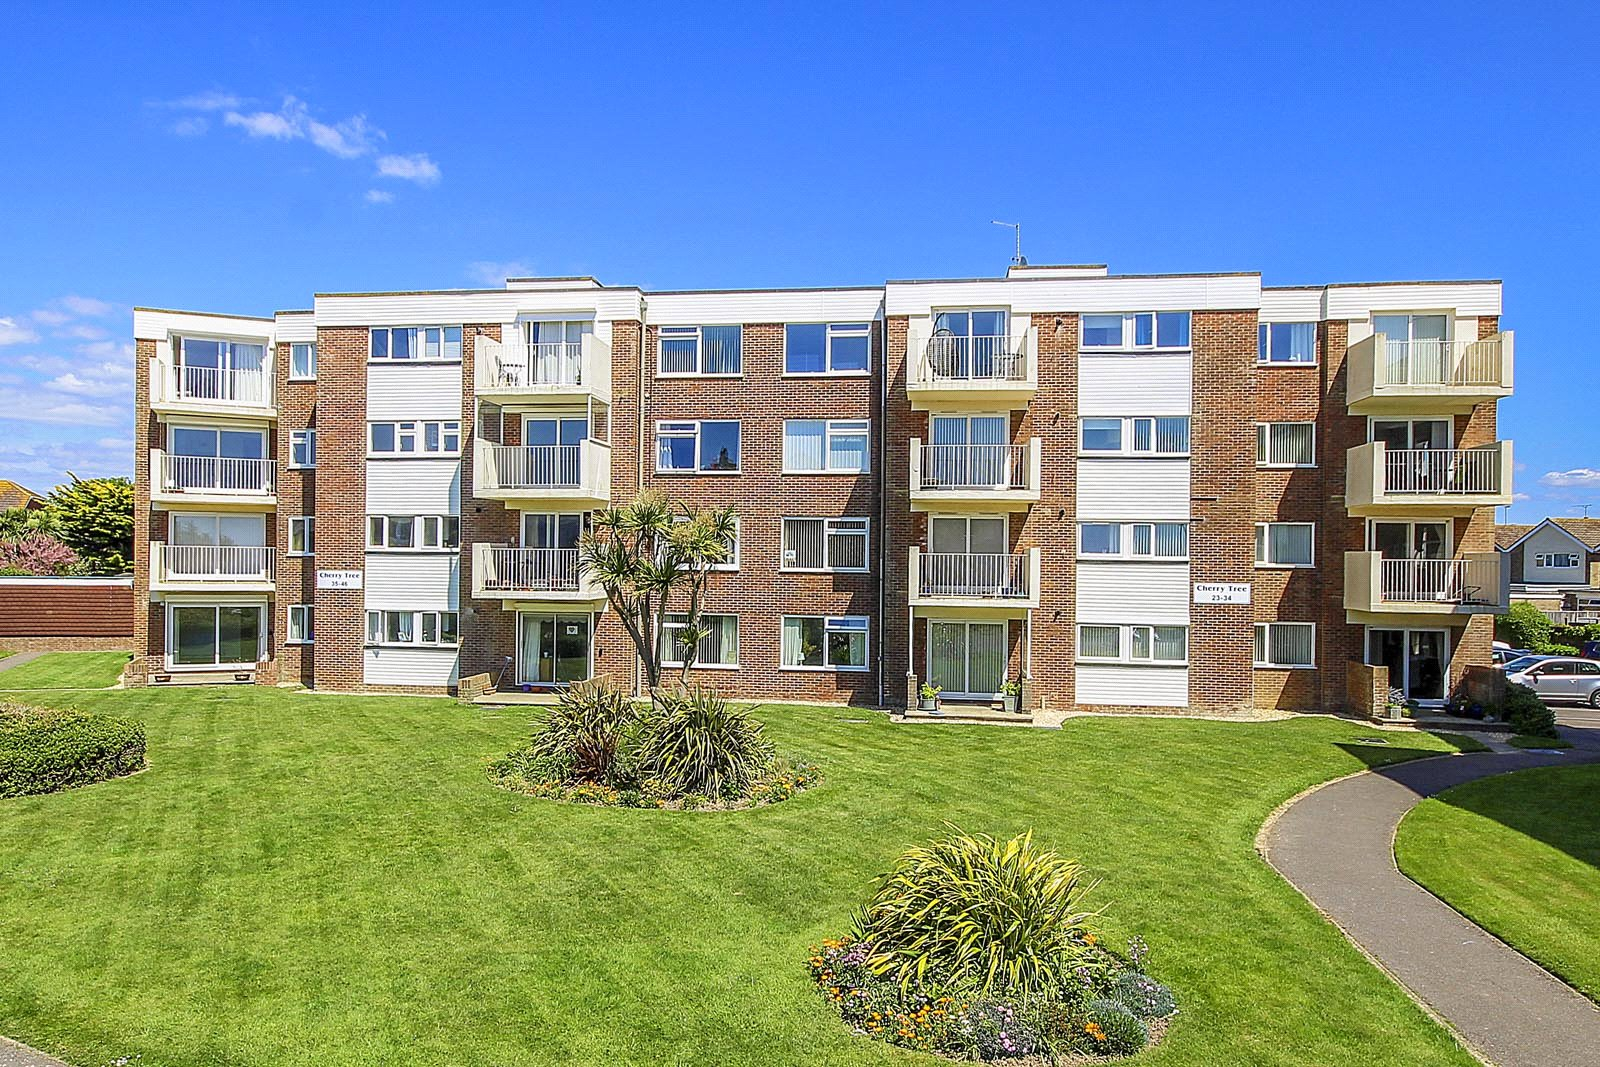 2 bed apartment for sale in Cherry Tree Court Marama Gardens, Rustington, BN16